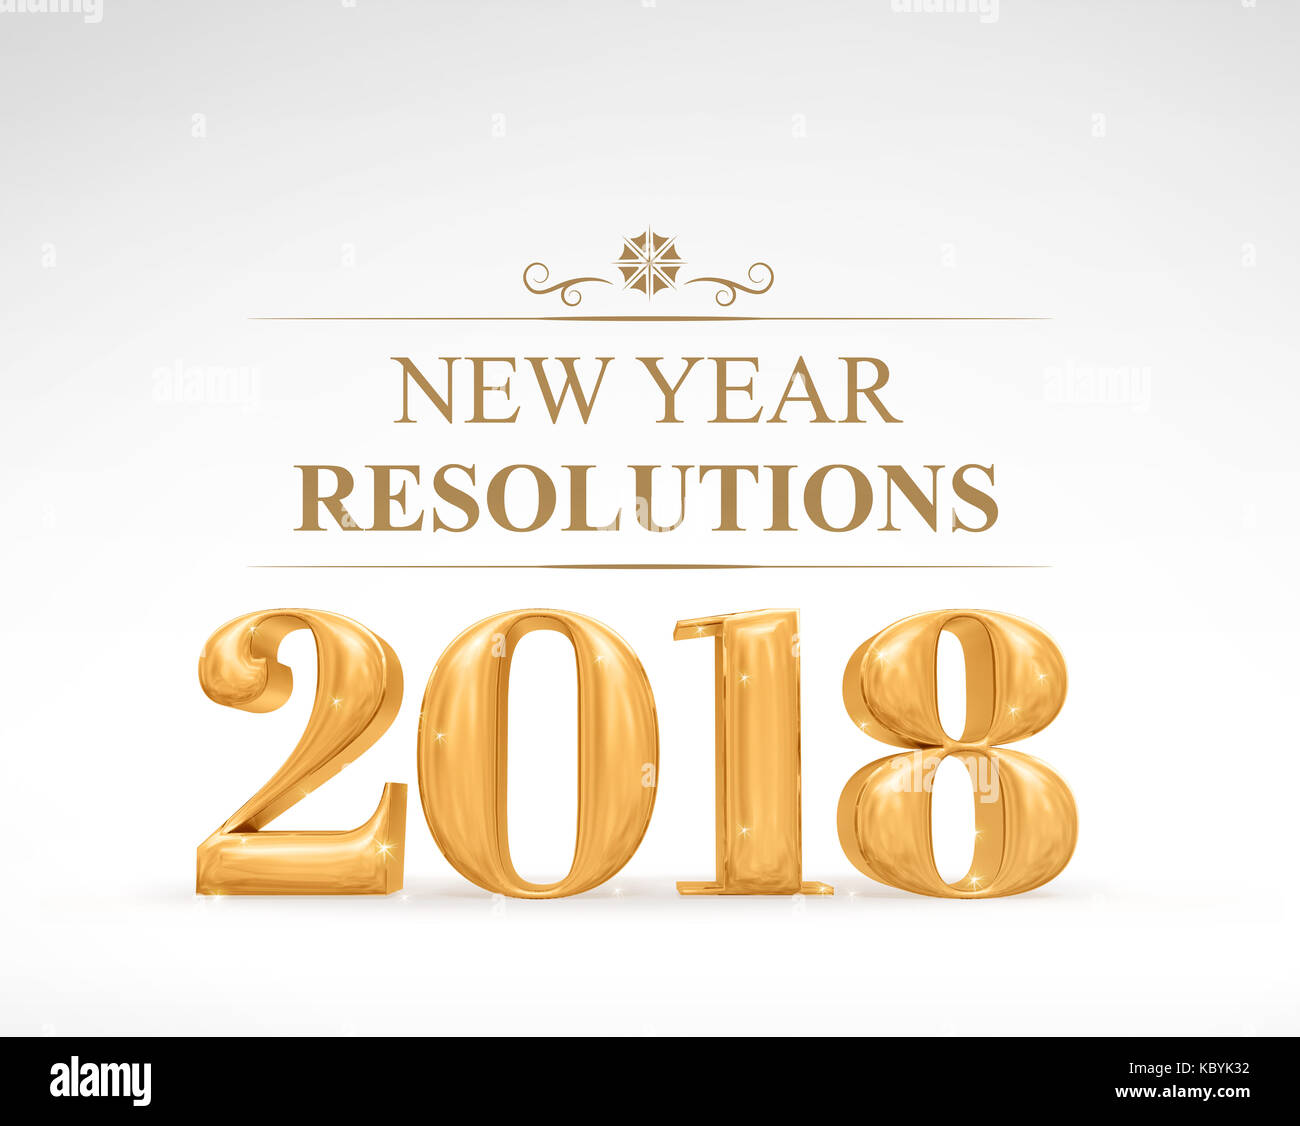 Golden color 2018 new year resolutions (3d rendering) on white ...